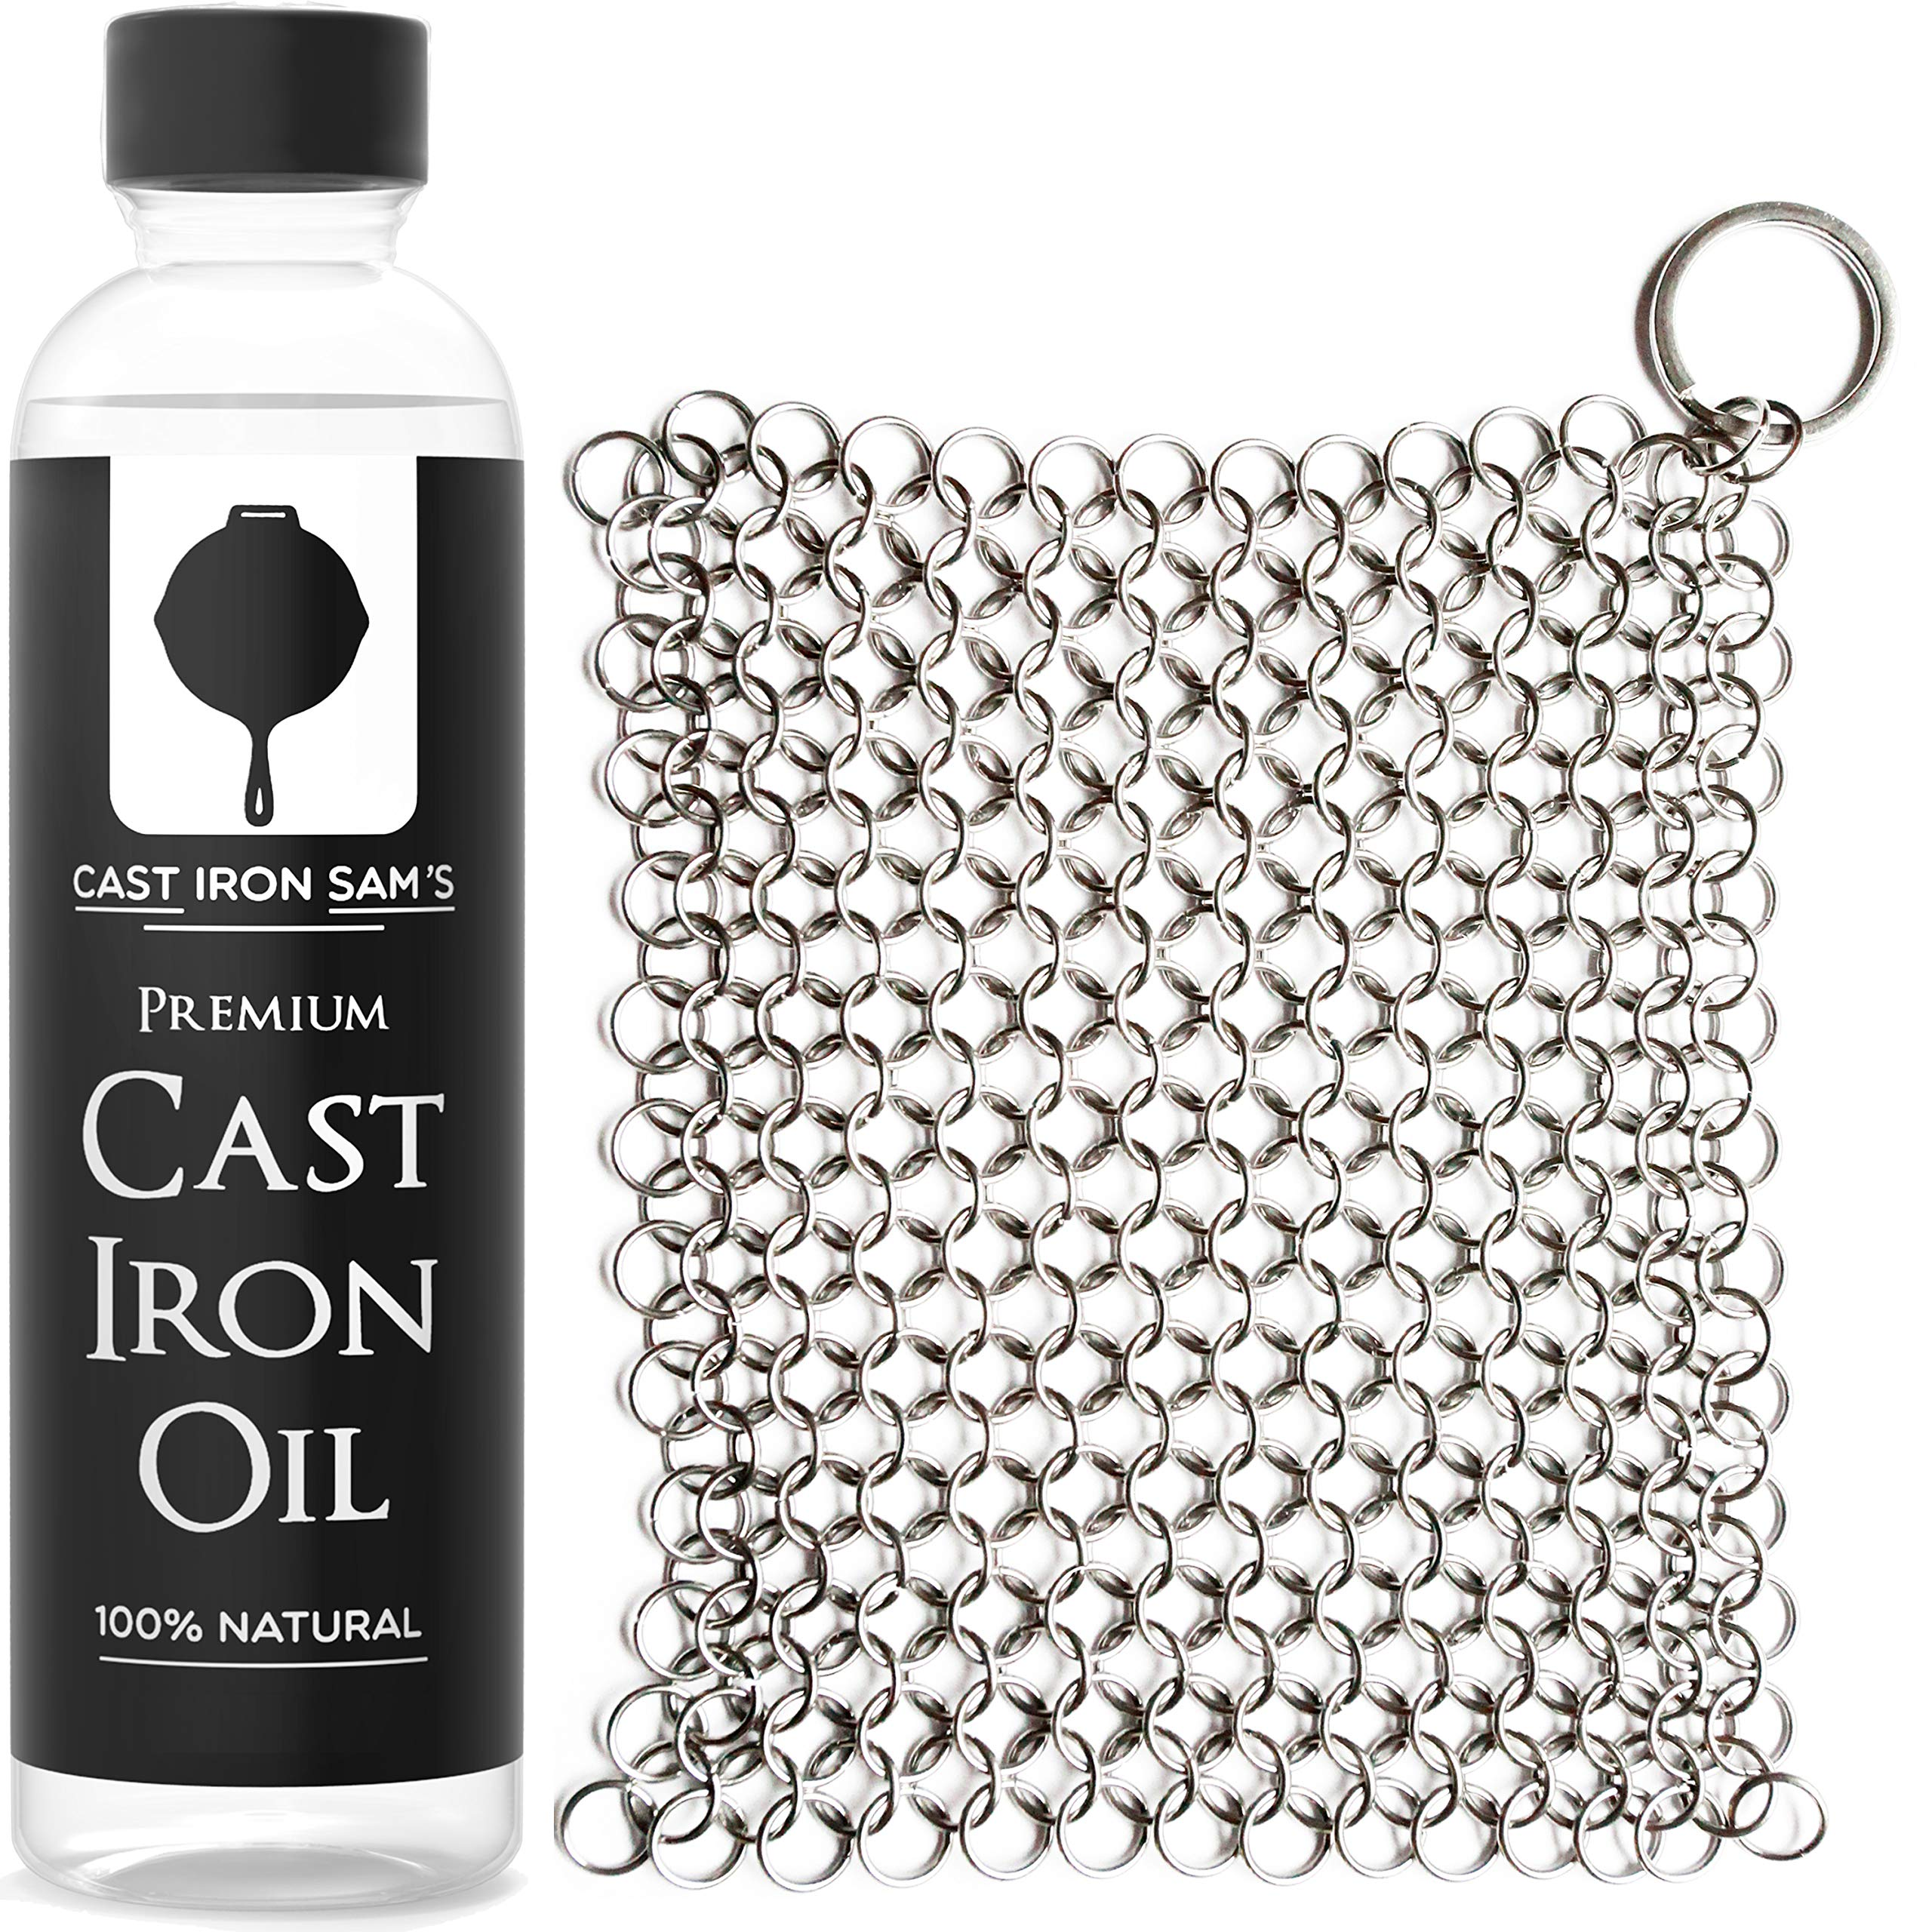 Stainless Steel Chainmail Cast Iron Scrubber and Seasoning Oil: Clean, Condition and Maintain Your Skillet, Dutch Oven, Grill Pan and all Castiron Cookware by Cast Iron Sam's